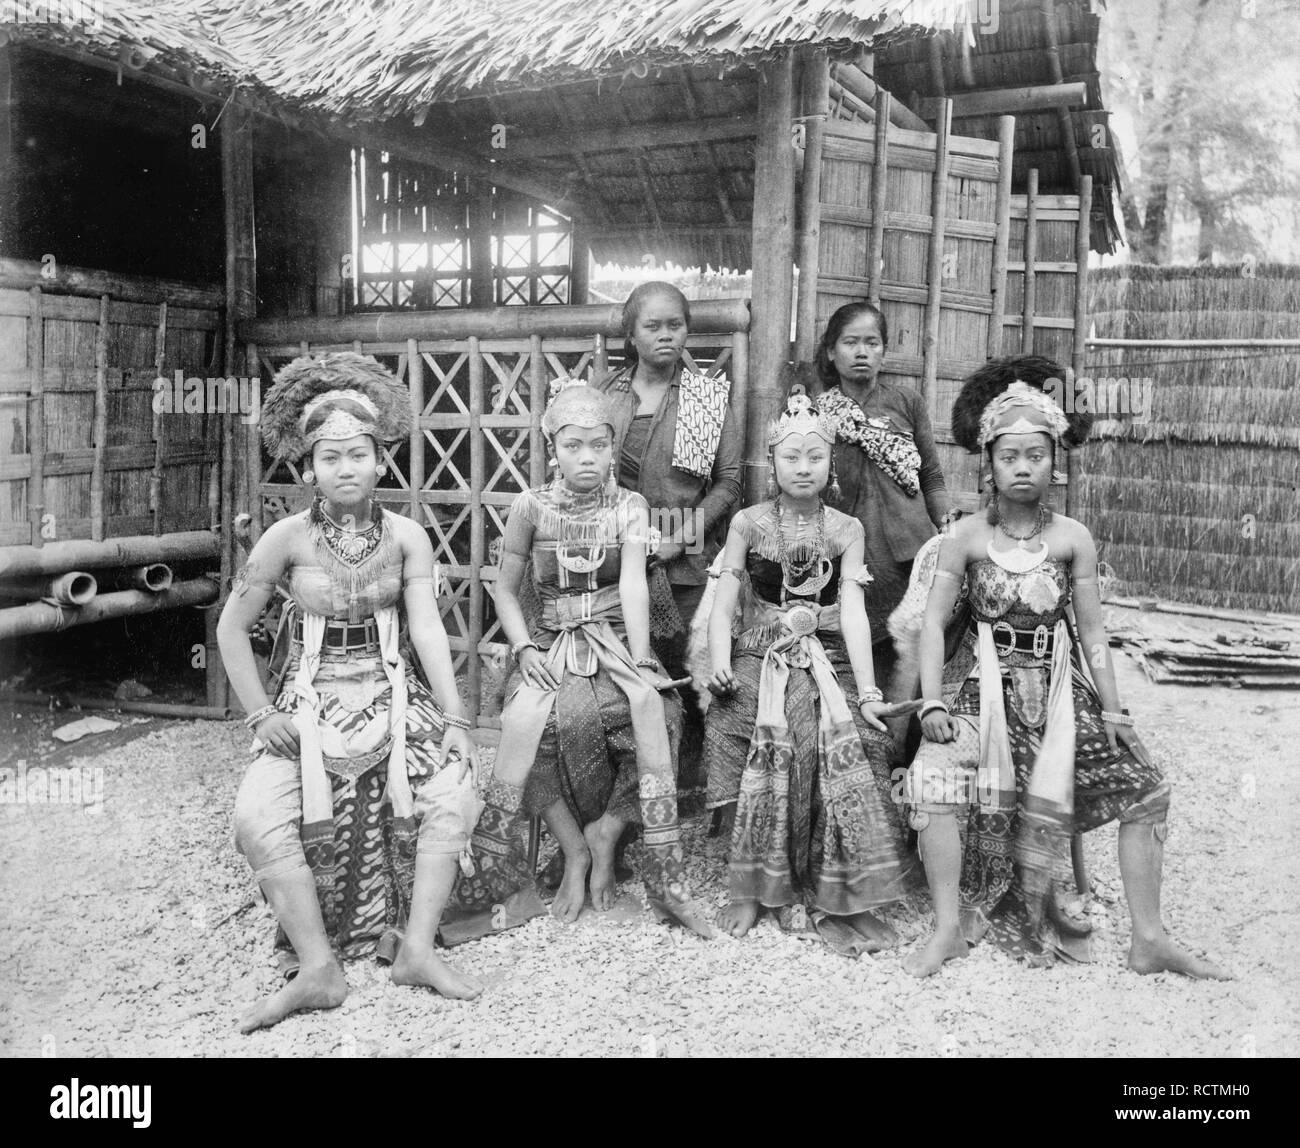 Six Javanese women, two in native dress, four in costume, full-length portrait, seated in front of Javanese dwelling, Paris Exposition, 1889 - Stock Image